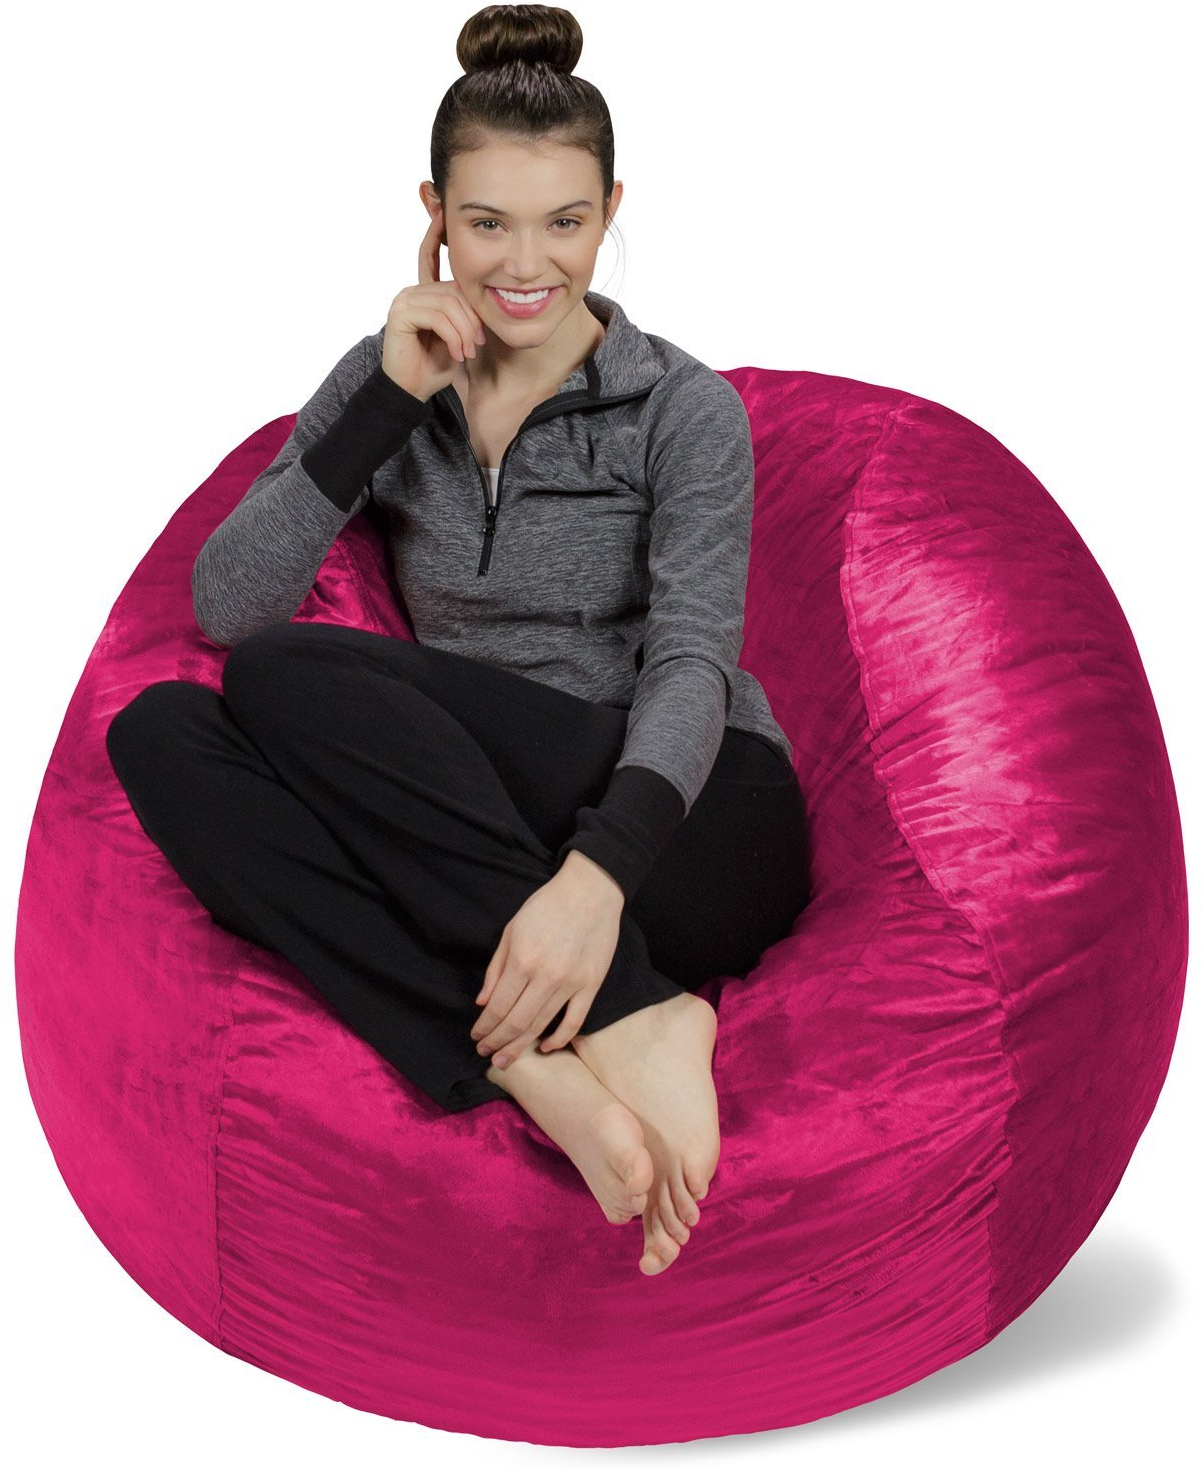 Astonishing Details About Bean Bag Ultra Suave Silla Sofa Saco Relleno De Espuma Memory Foam Chair Magenta Gmtry Best Dining Table And Chair Ideas Images Gmtryco